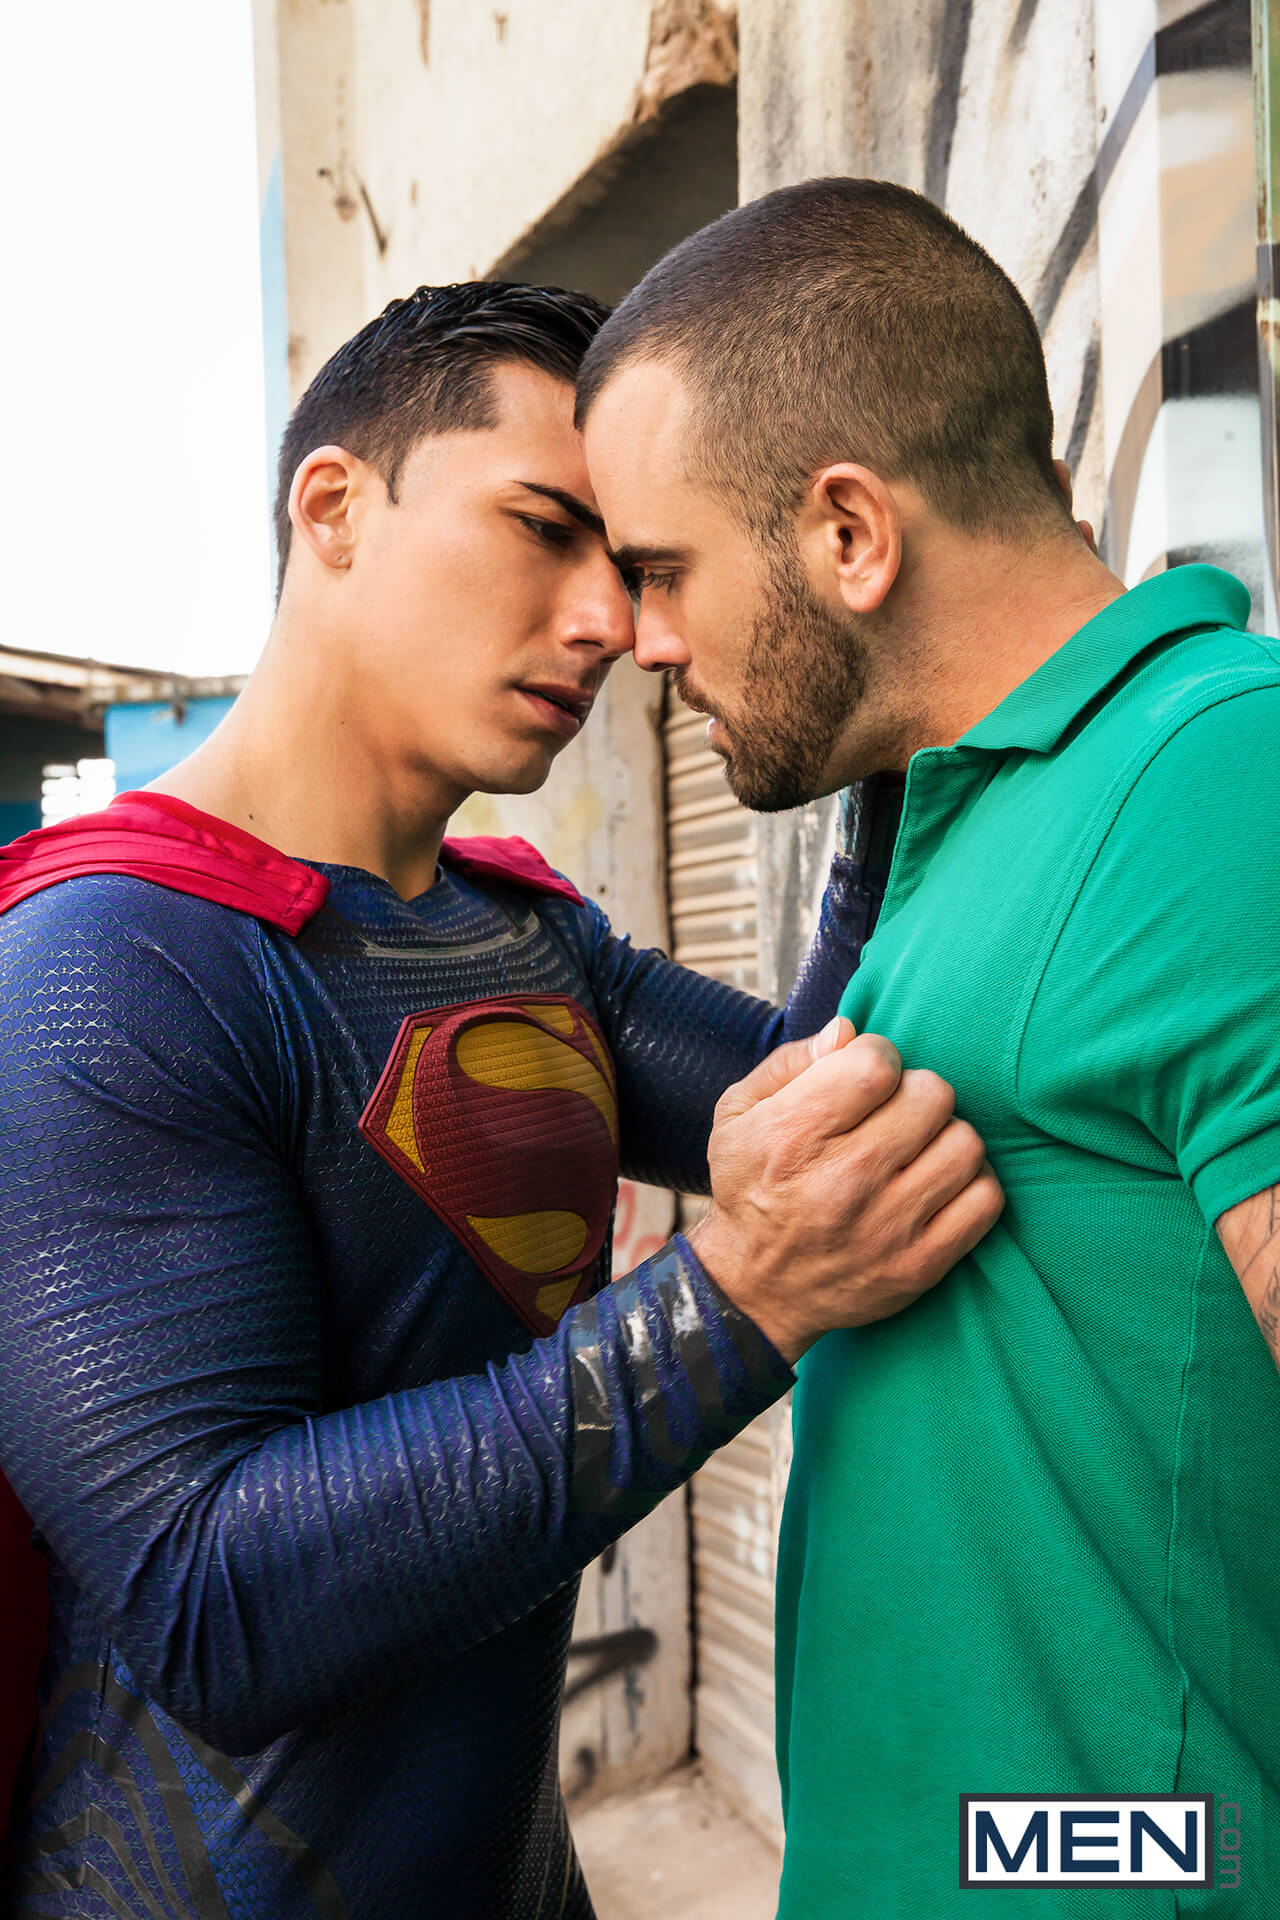 men drill my hole batman v superman a gay xxx parody part 1 damien crosse topher di maggio gay porn blog image 7